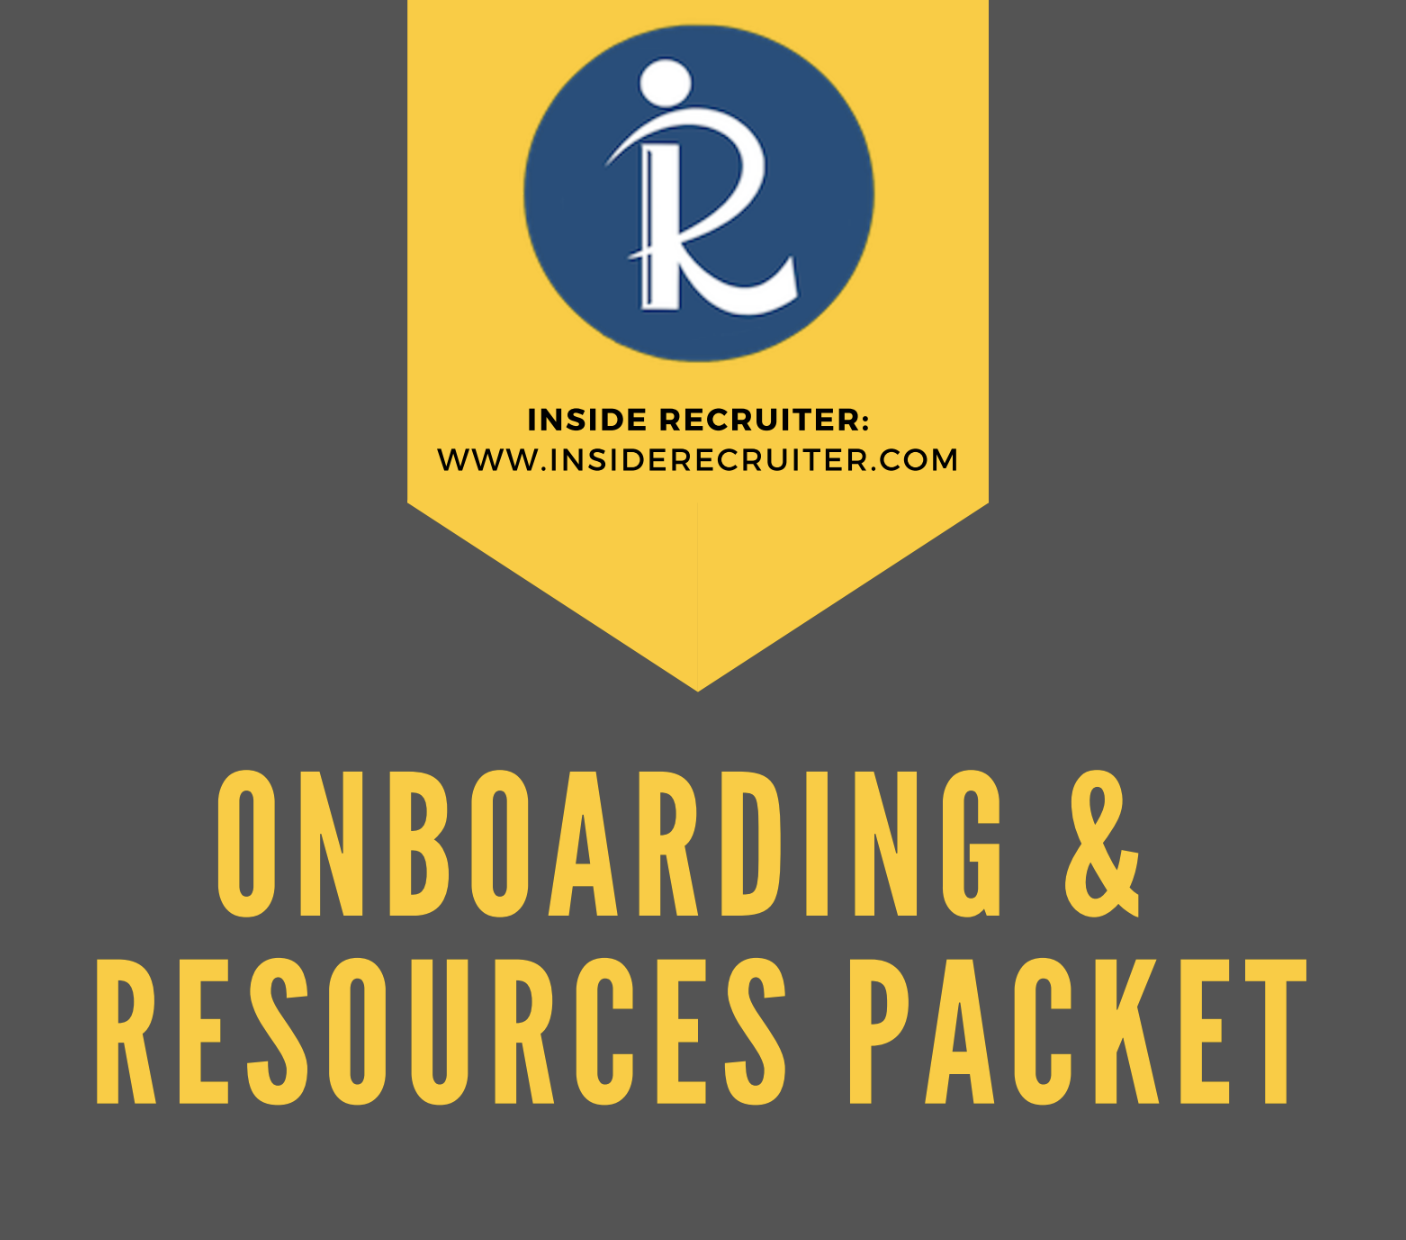 This is your onboarding & resources packet. Access tools, resources, and the timeline of what to expect as you begin your process with us.